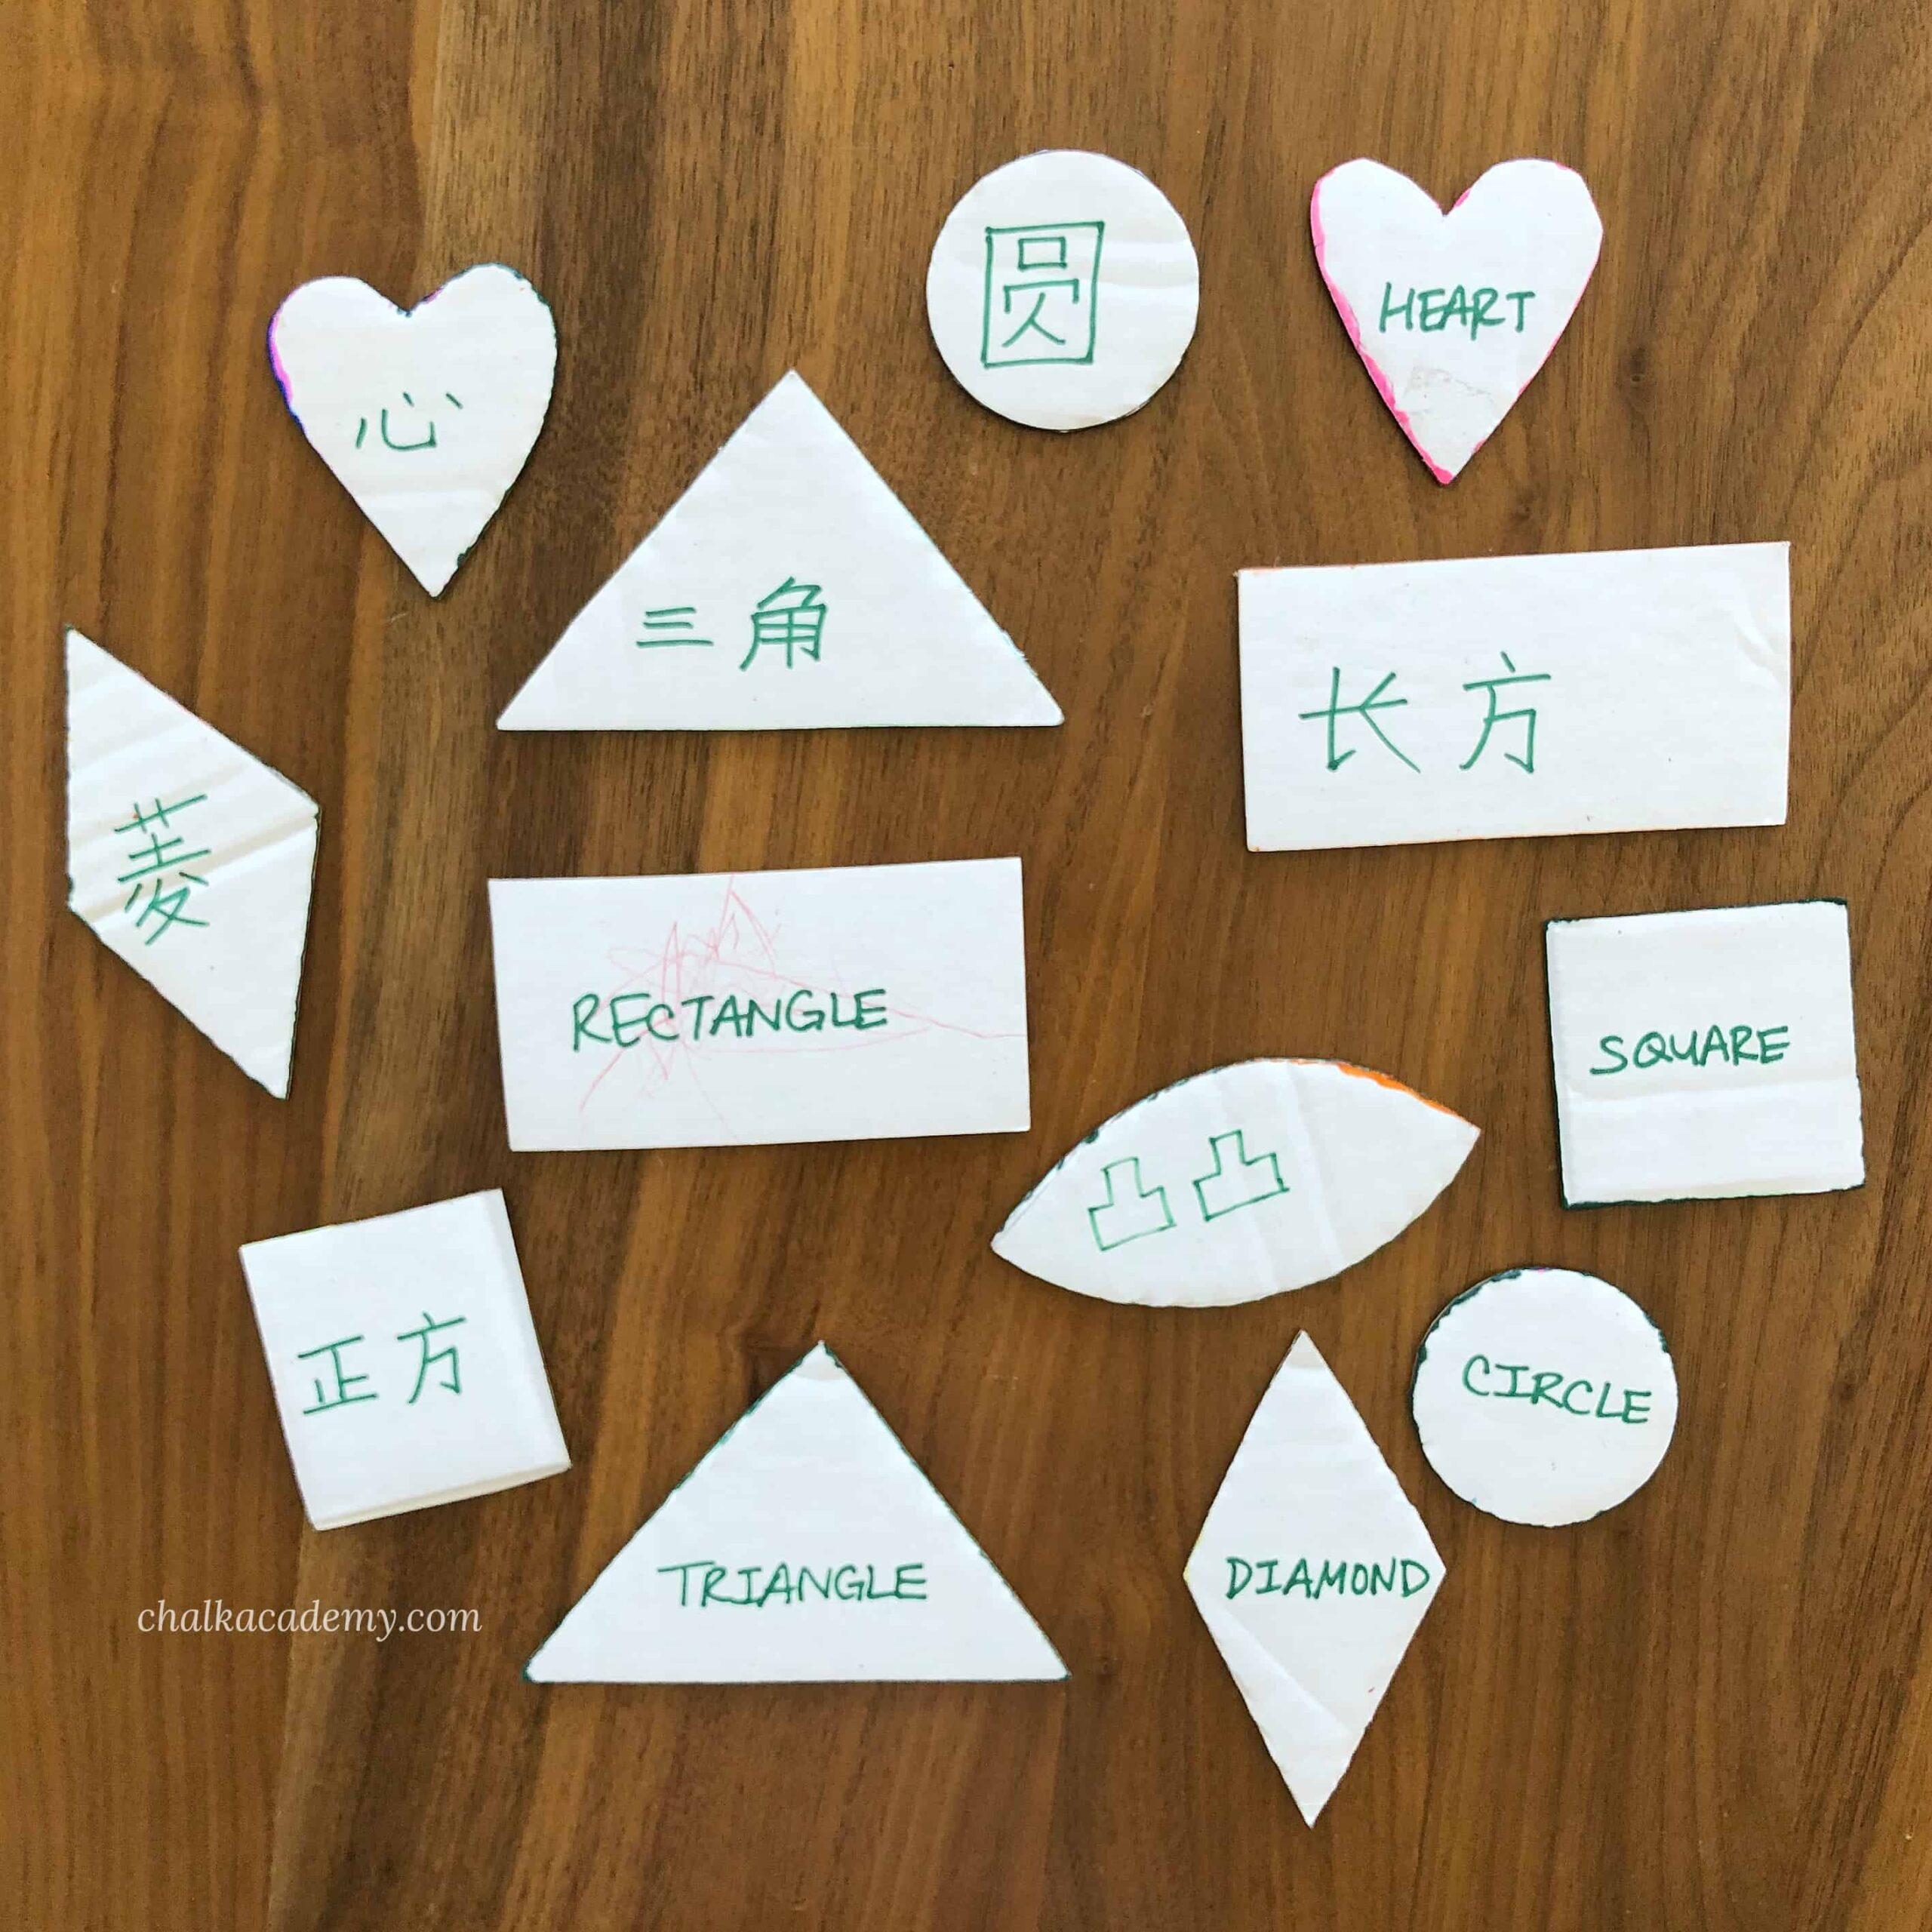 How to Make and Teach with Bilingual Cardboard Shape Templates